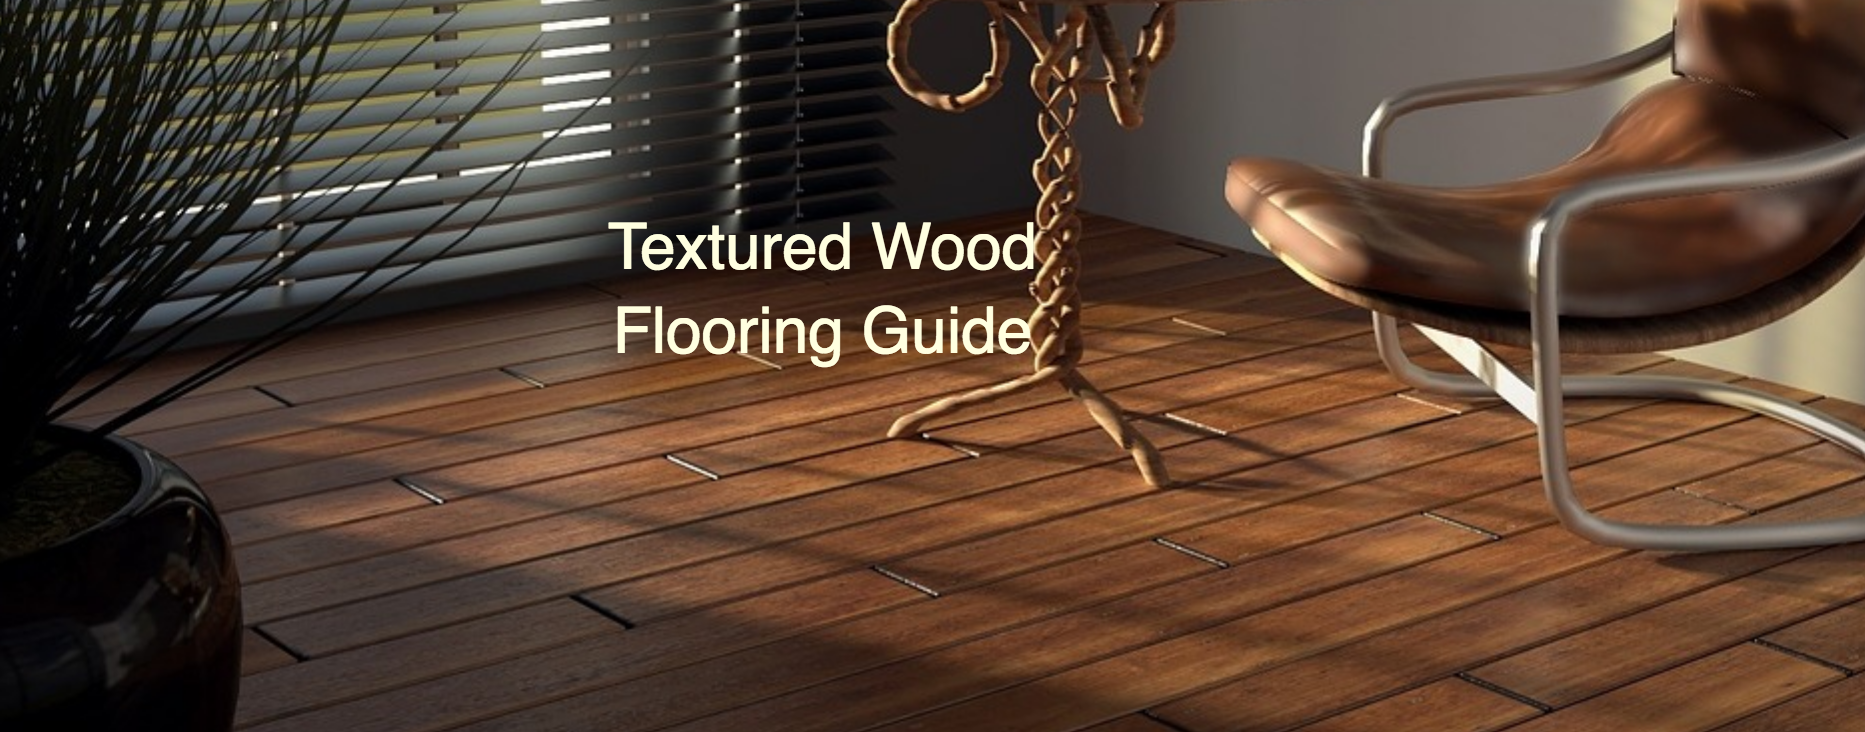 One Of The Greatest Things About Wood Flooring Is Its Texture Irrespective Whether You Choose Solid Or Engineered That See